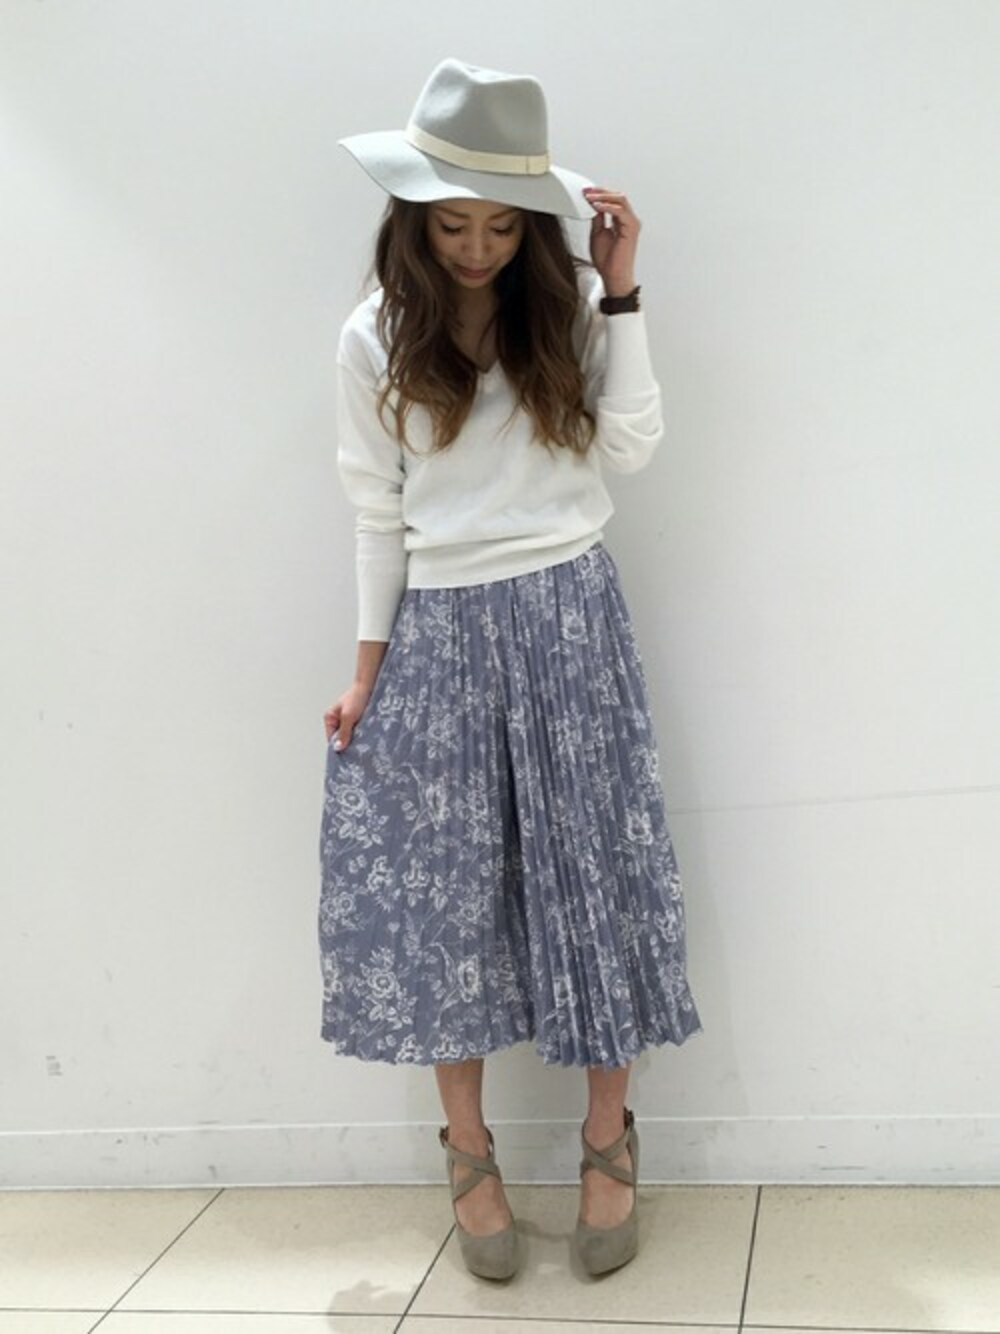 出典:http://wear.jp/drwcys_tomoe/6065067/